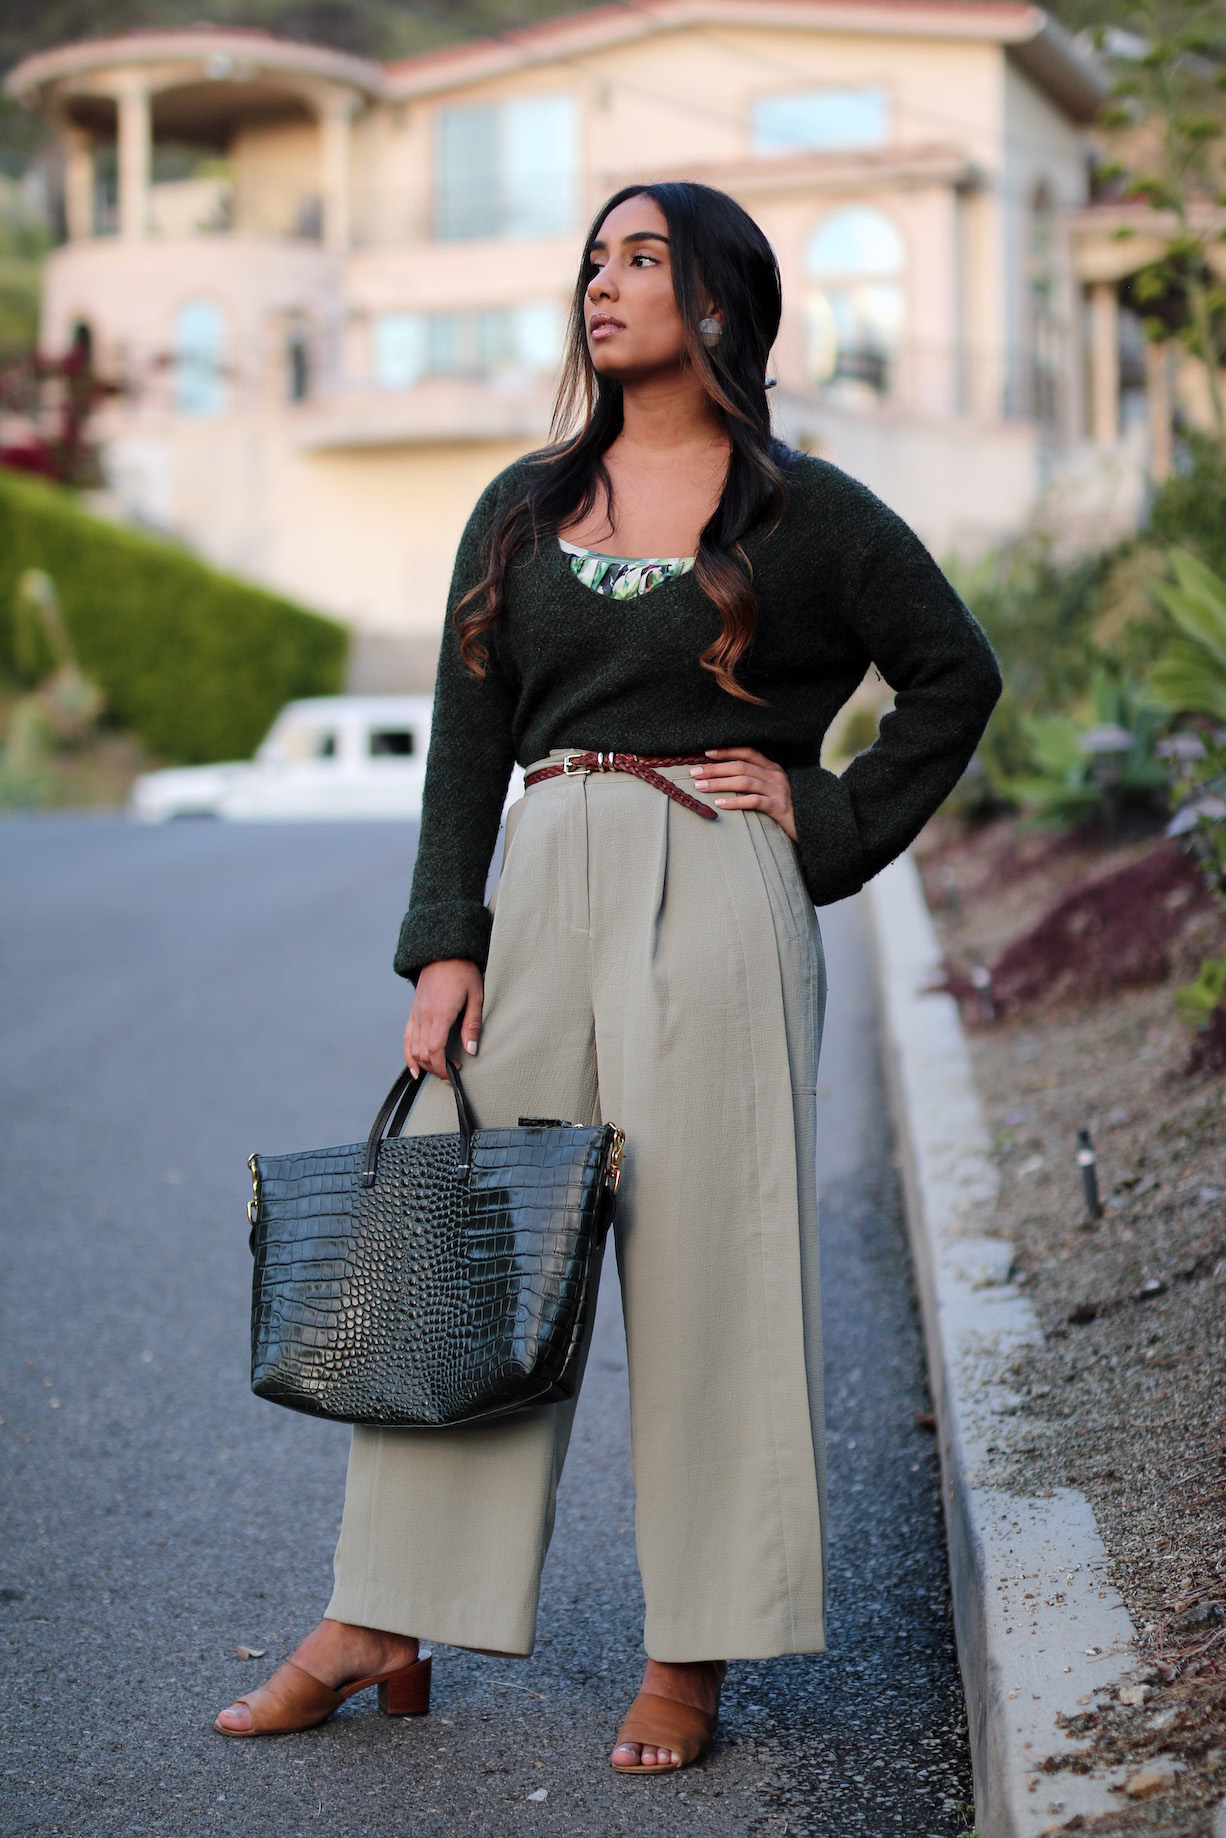 A Week Of Outfits With Kat Vargas on The Good Trade